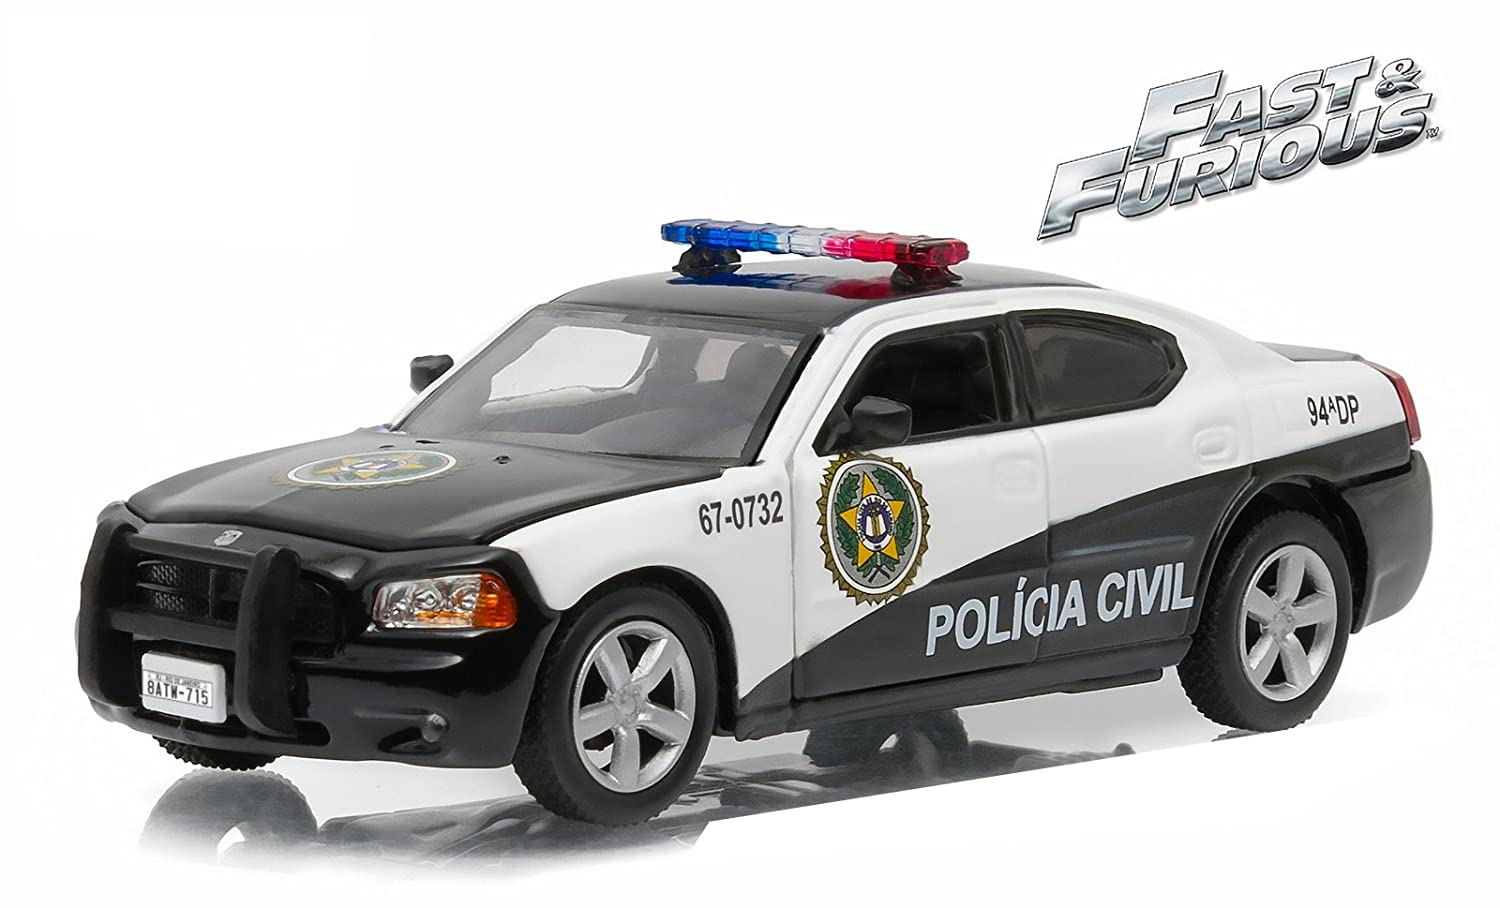 Greenlight Collectibles – 86237 – Dodge Charger – Rio Policía – Fast and Furious 5 – 2011 – Escala 1/43 – negro/blanco